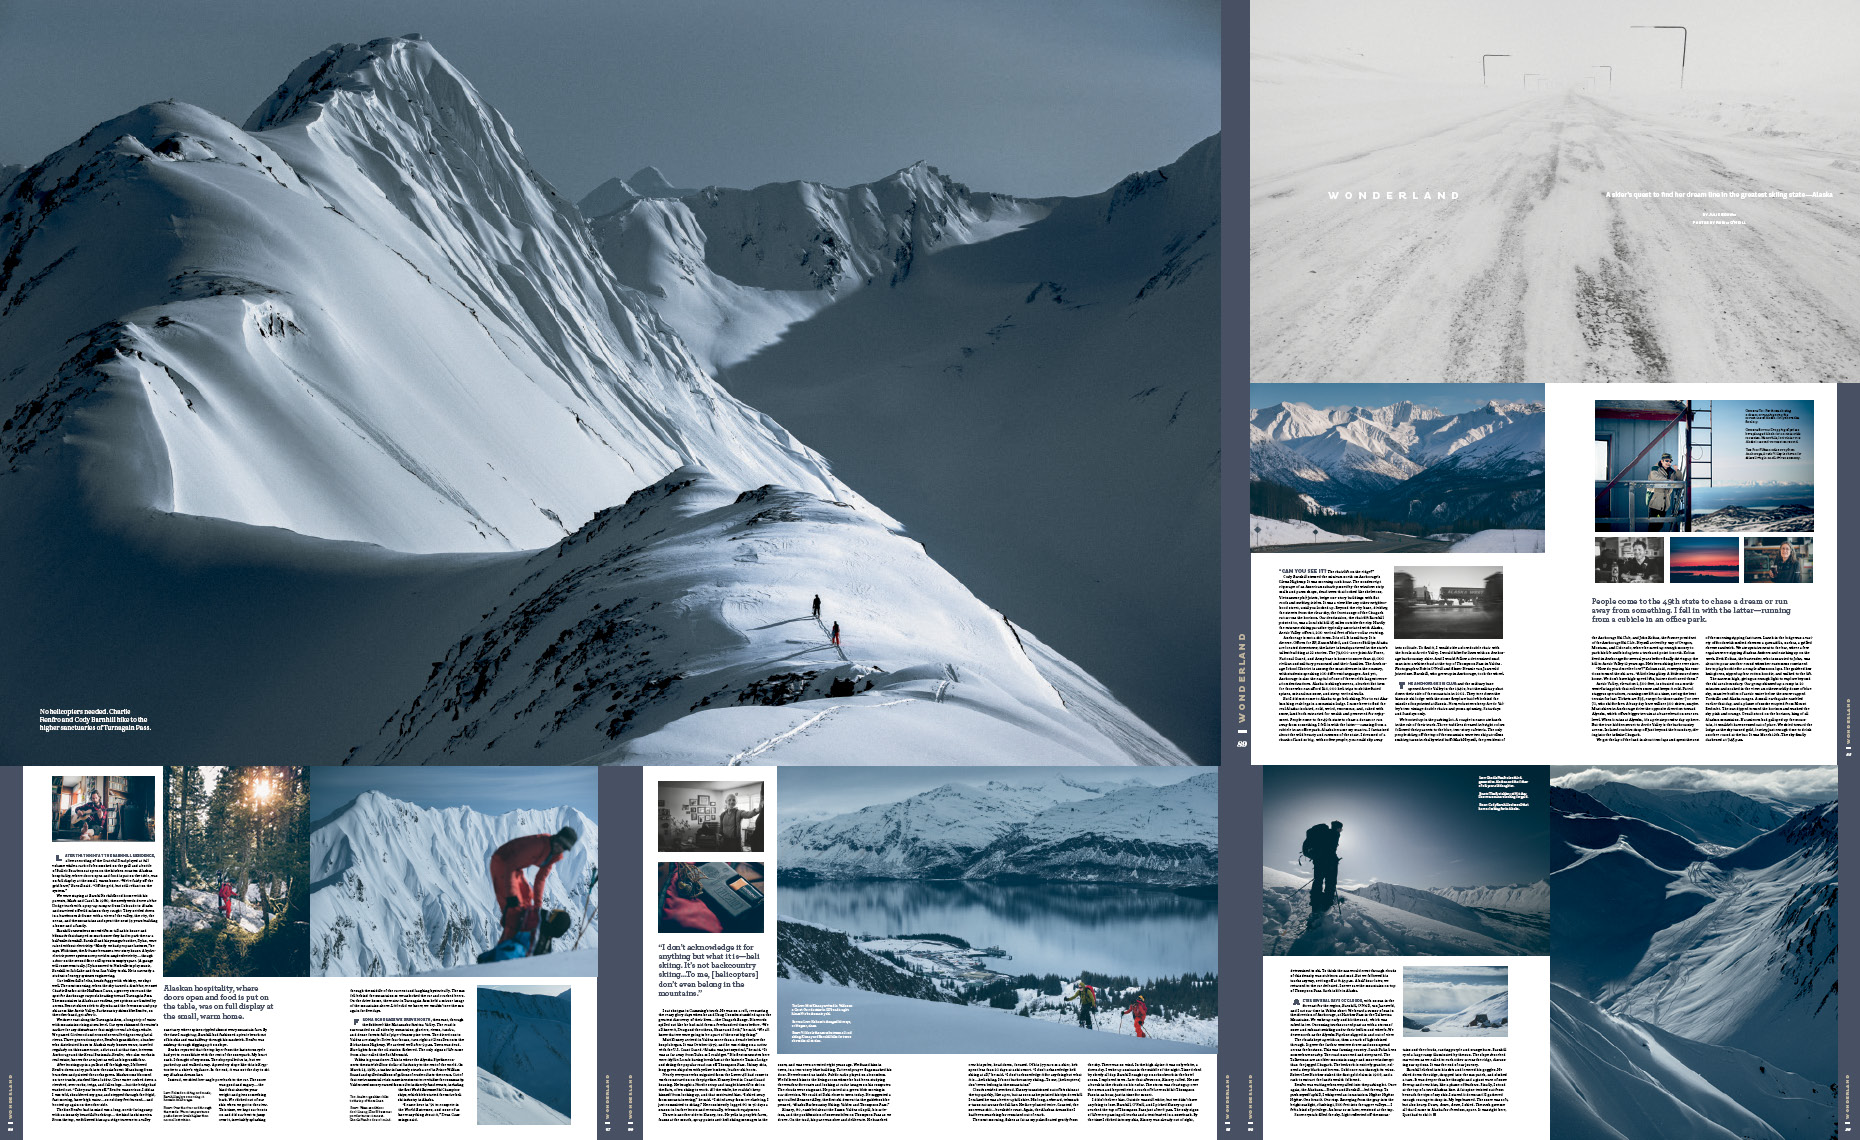 Alaska ski photography in Powder magazine article